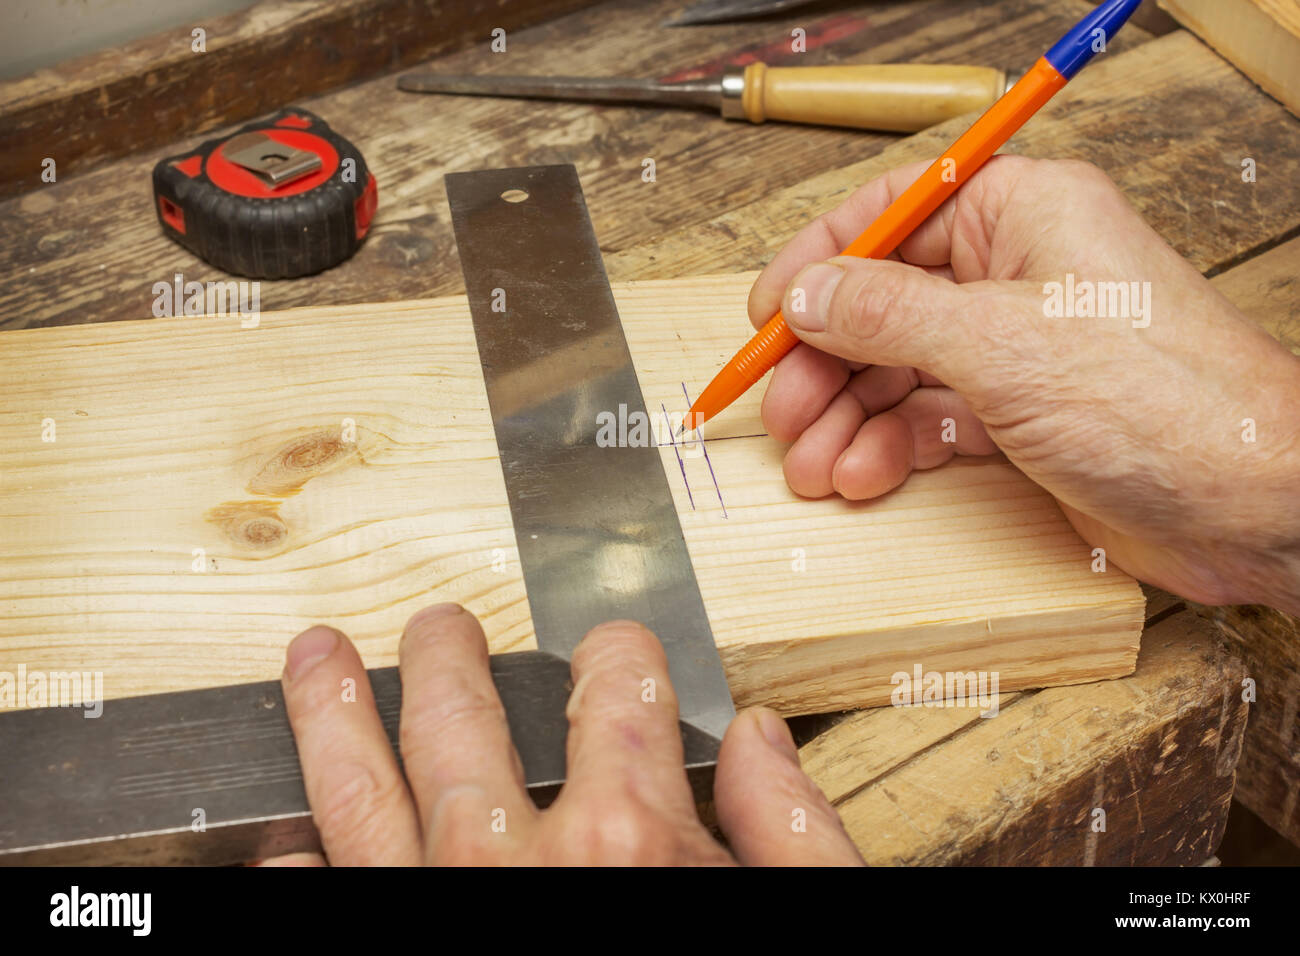 Woodworker draws a line on a wooden board, putting it on a workbench - Stock Image